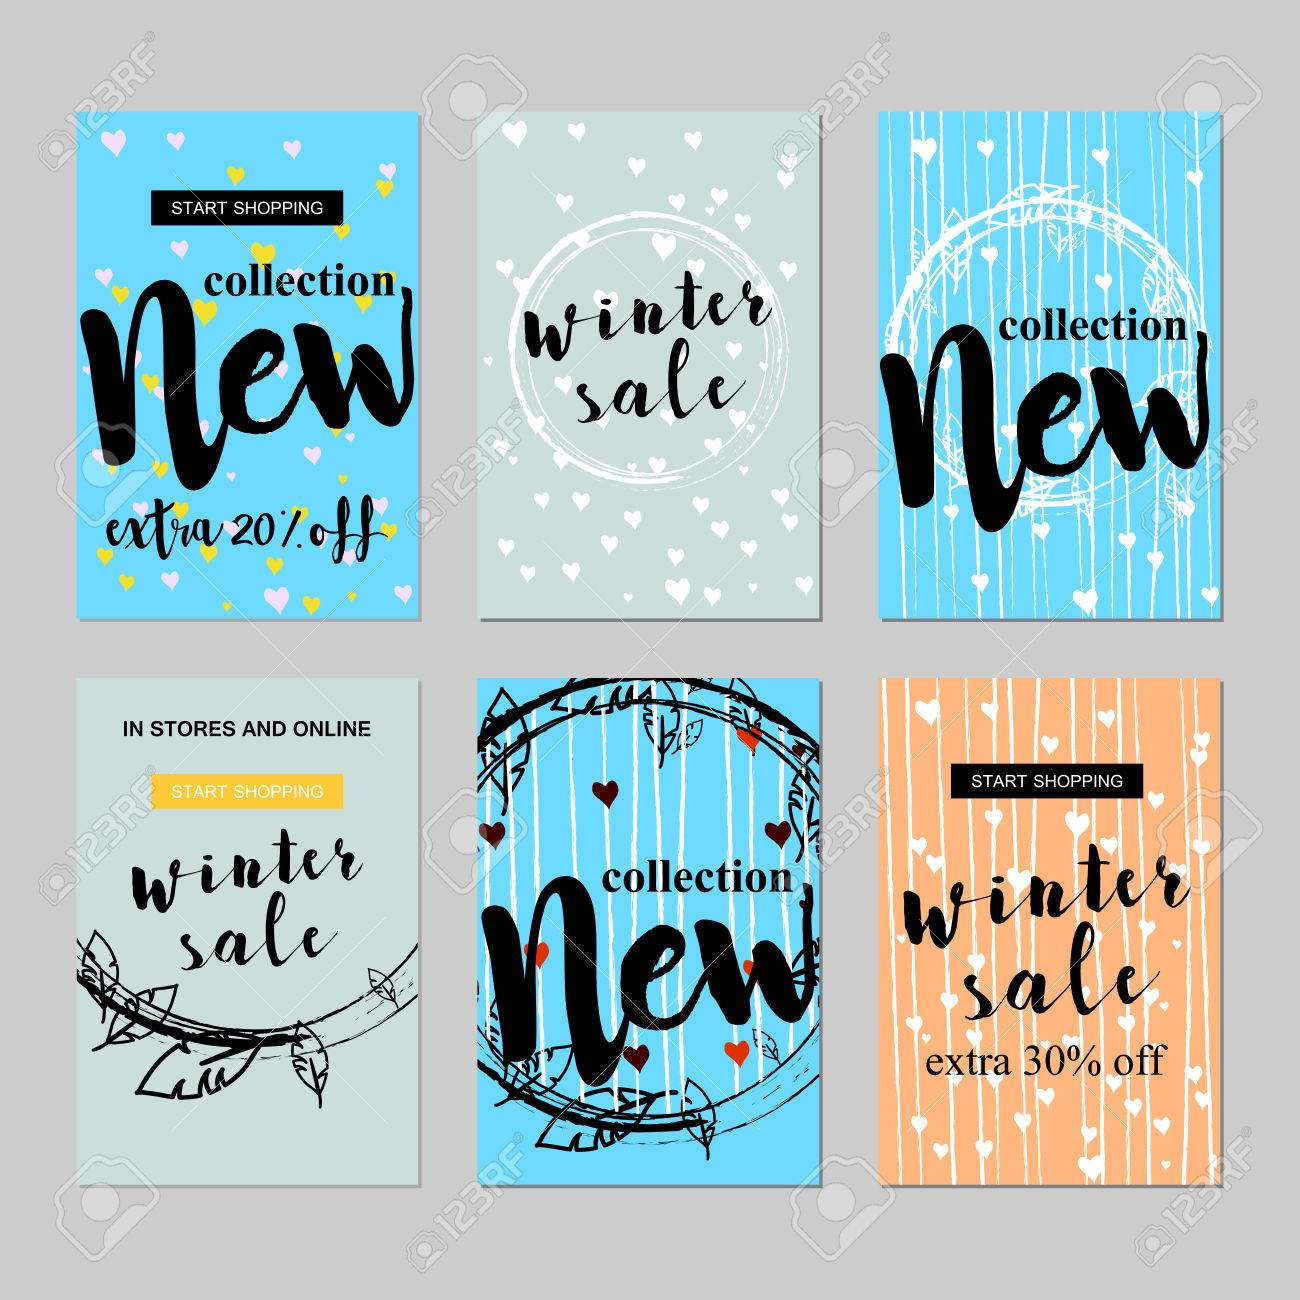 Sale Website Banners Design Set Sale Tag Sale Promotional Material Royalty Free Cliparts Vectors And Stock Illustration Image 69087904